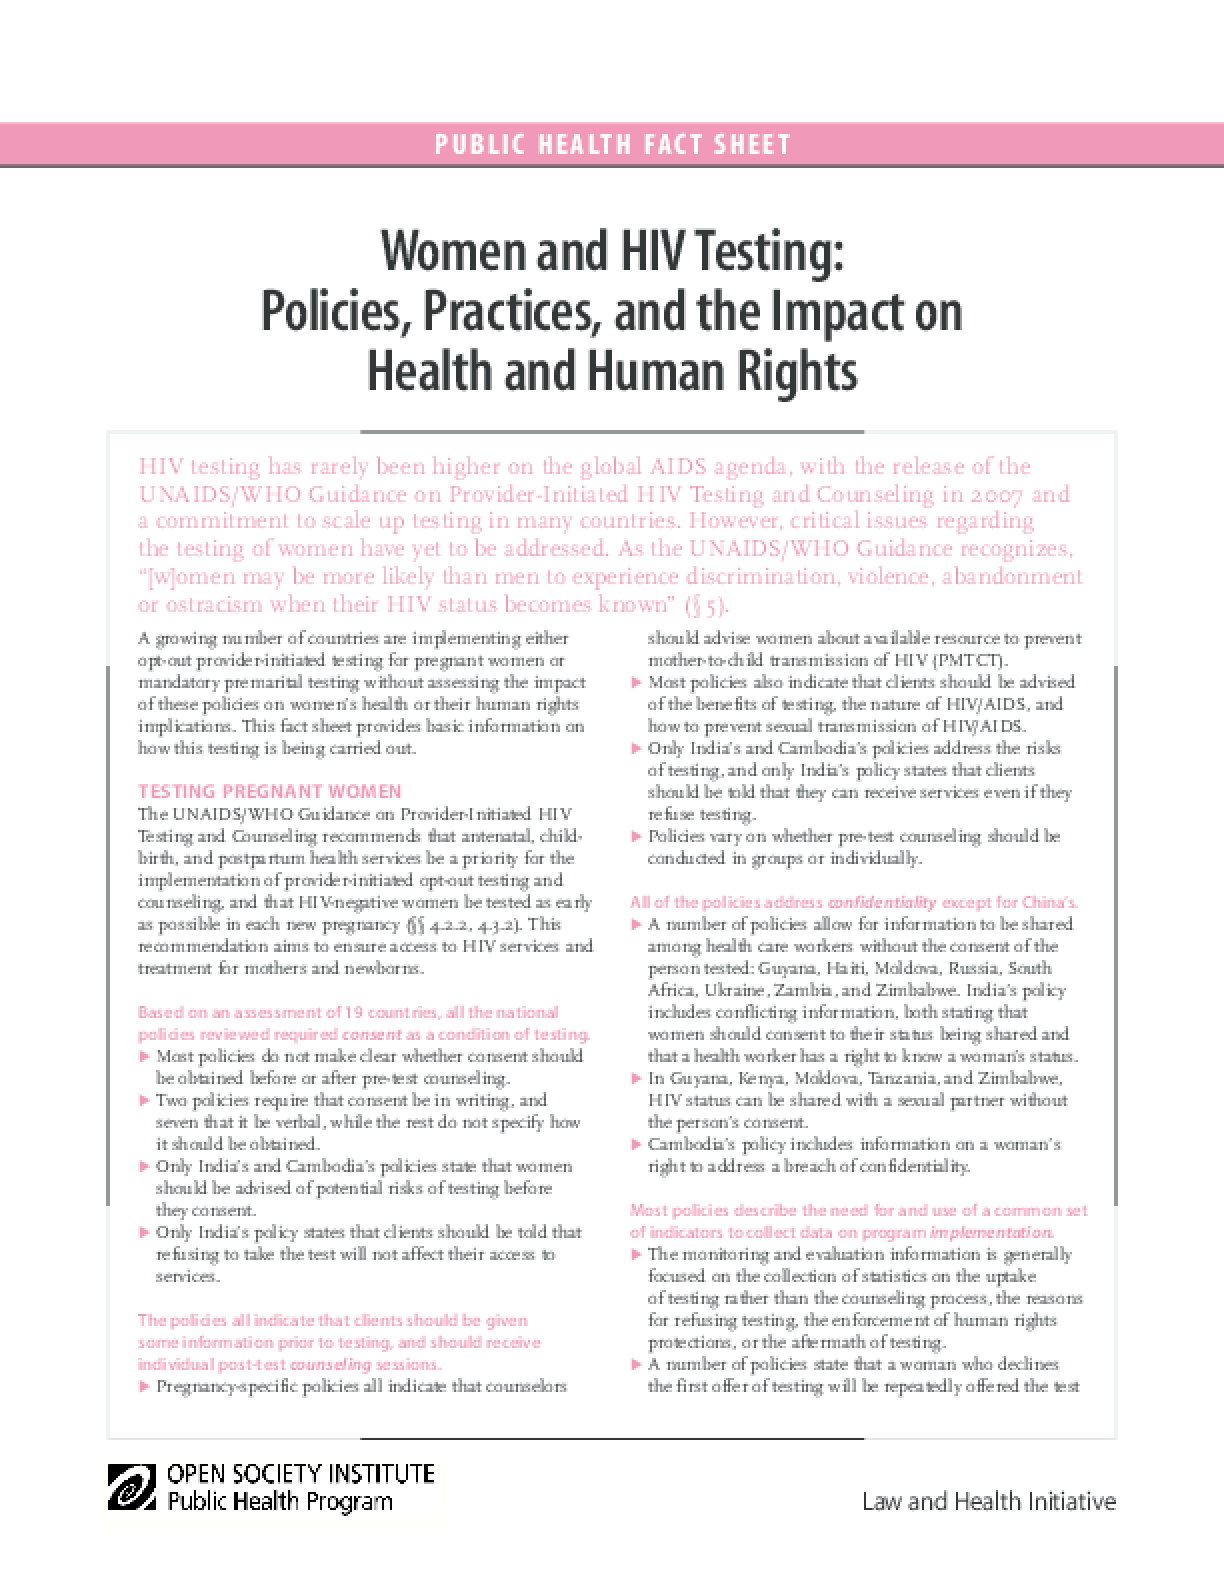 Women and HIV Testing: Policies, Practices, and the Impact on Health and Human Rights